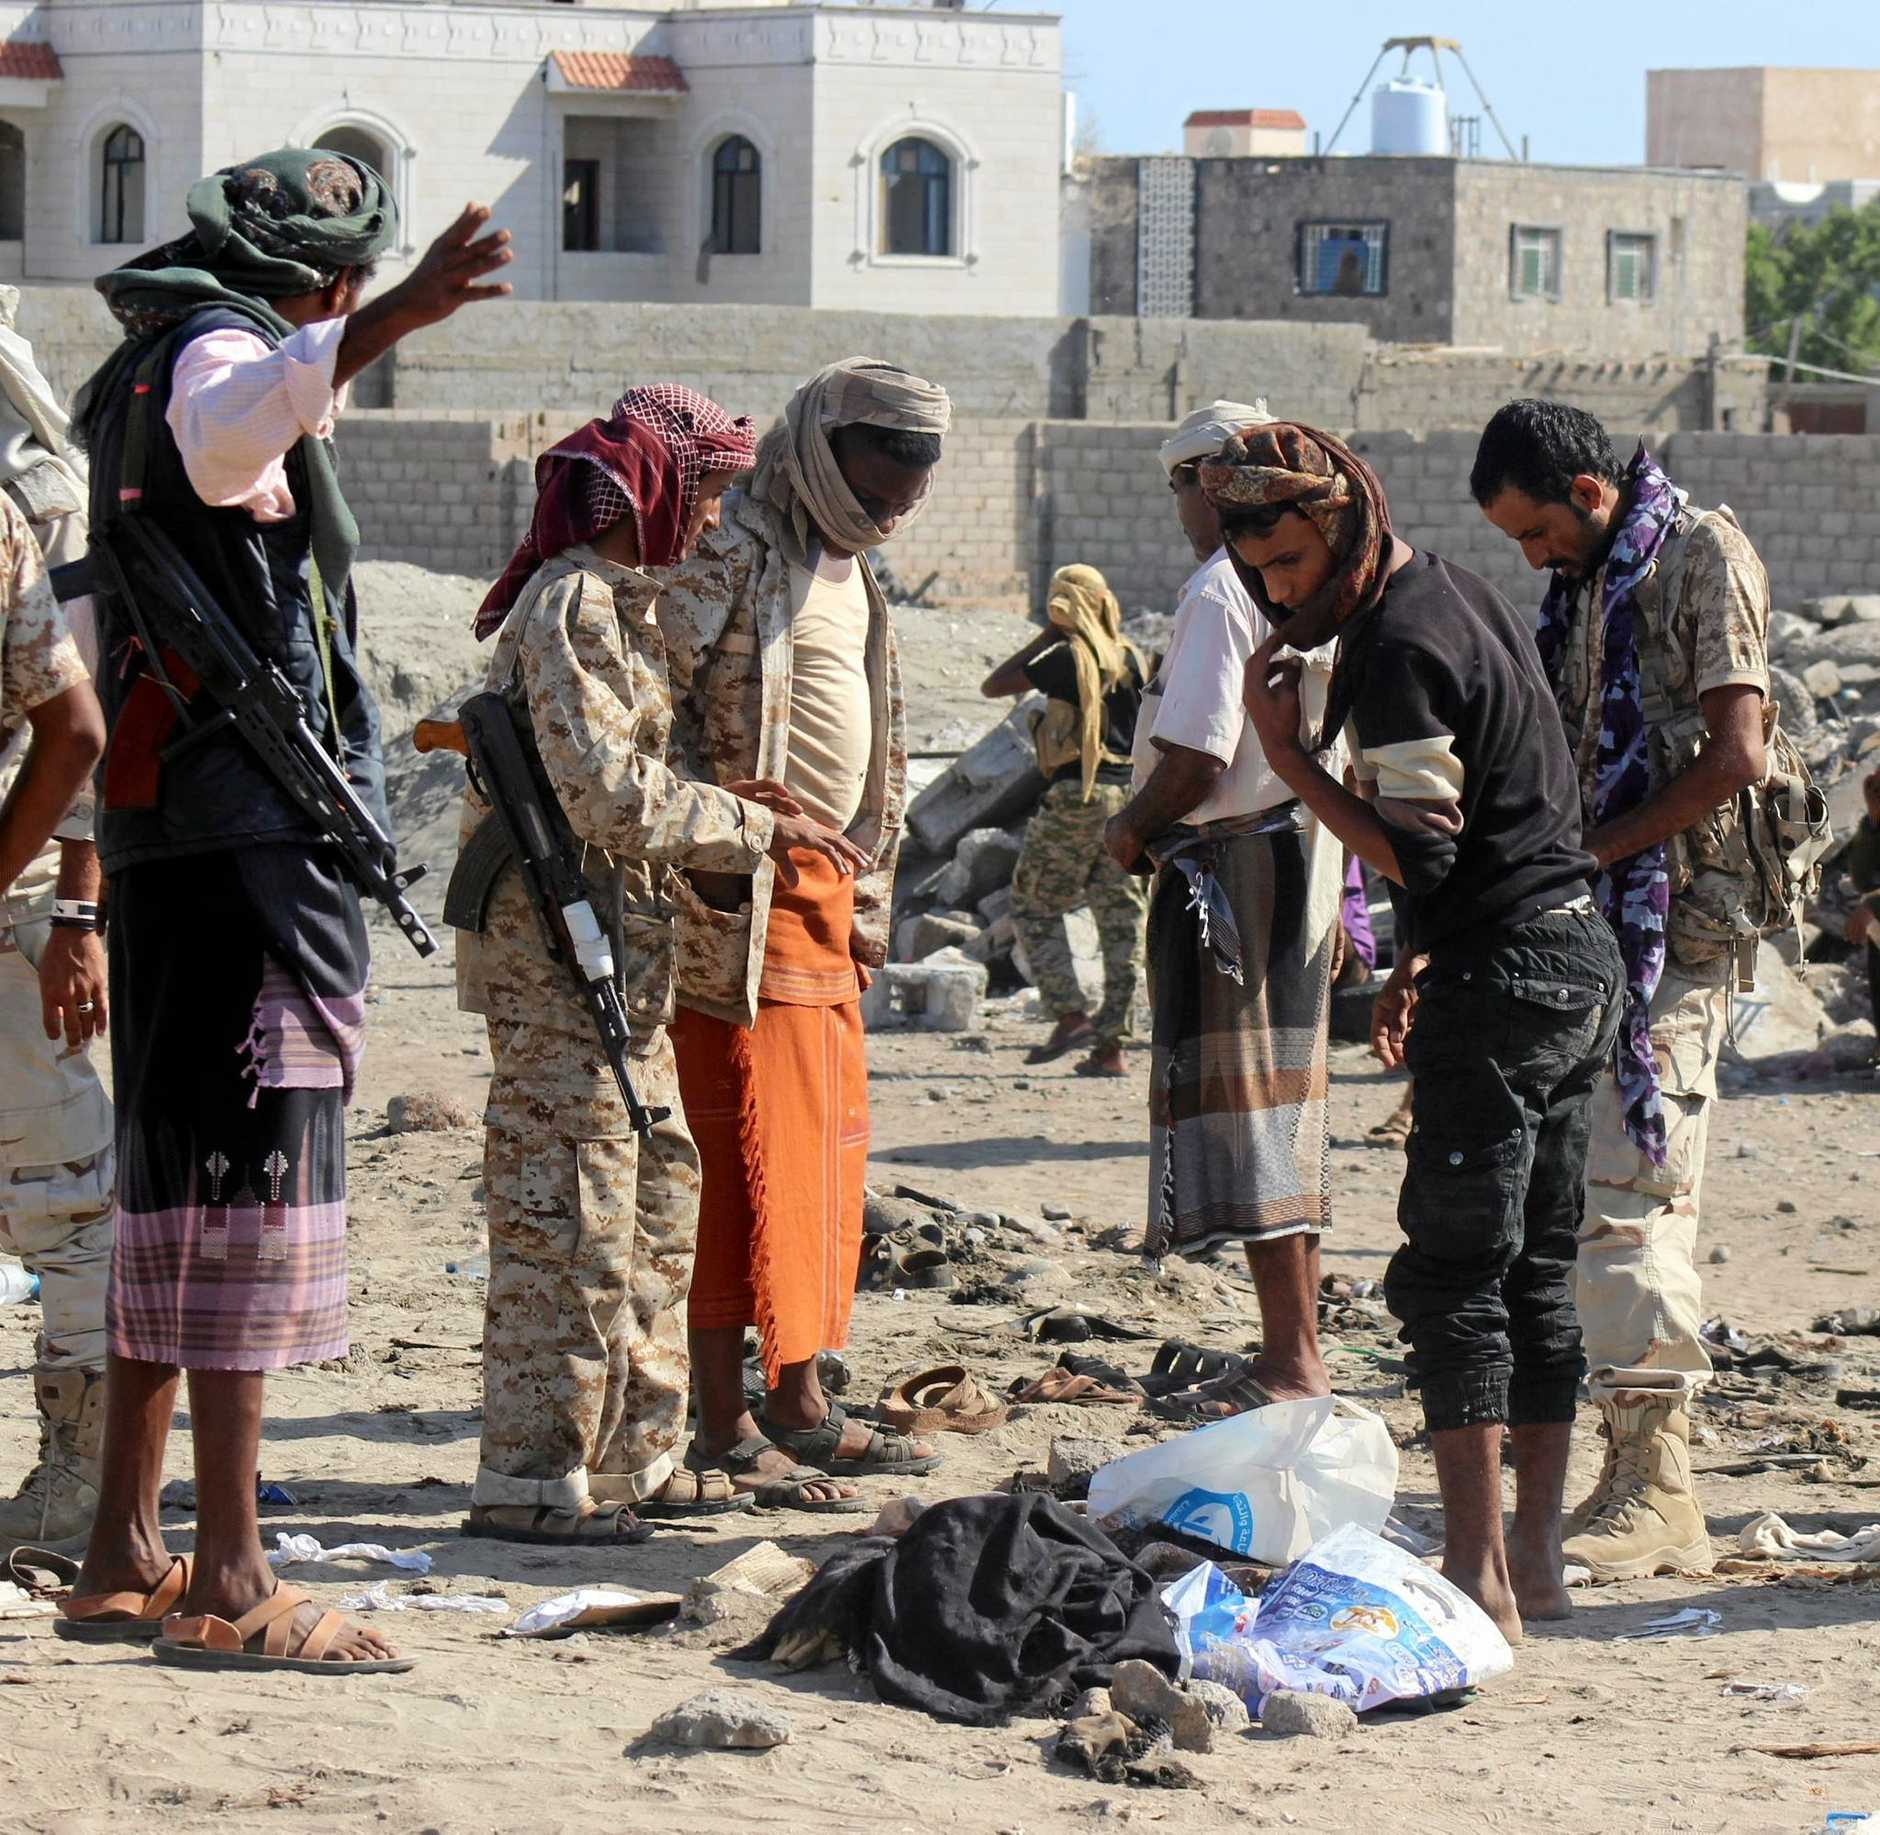 Yemeni residents and gunmen stand at the site of bombing that was targeting a military barracks in the southern province of Aden.